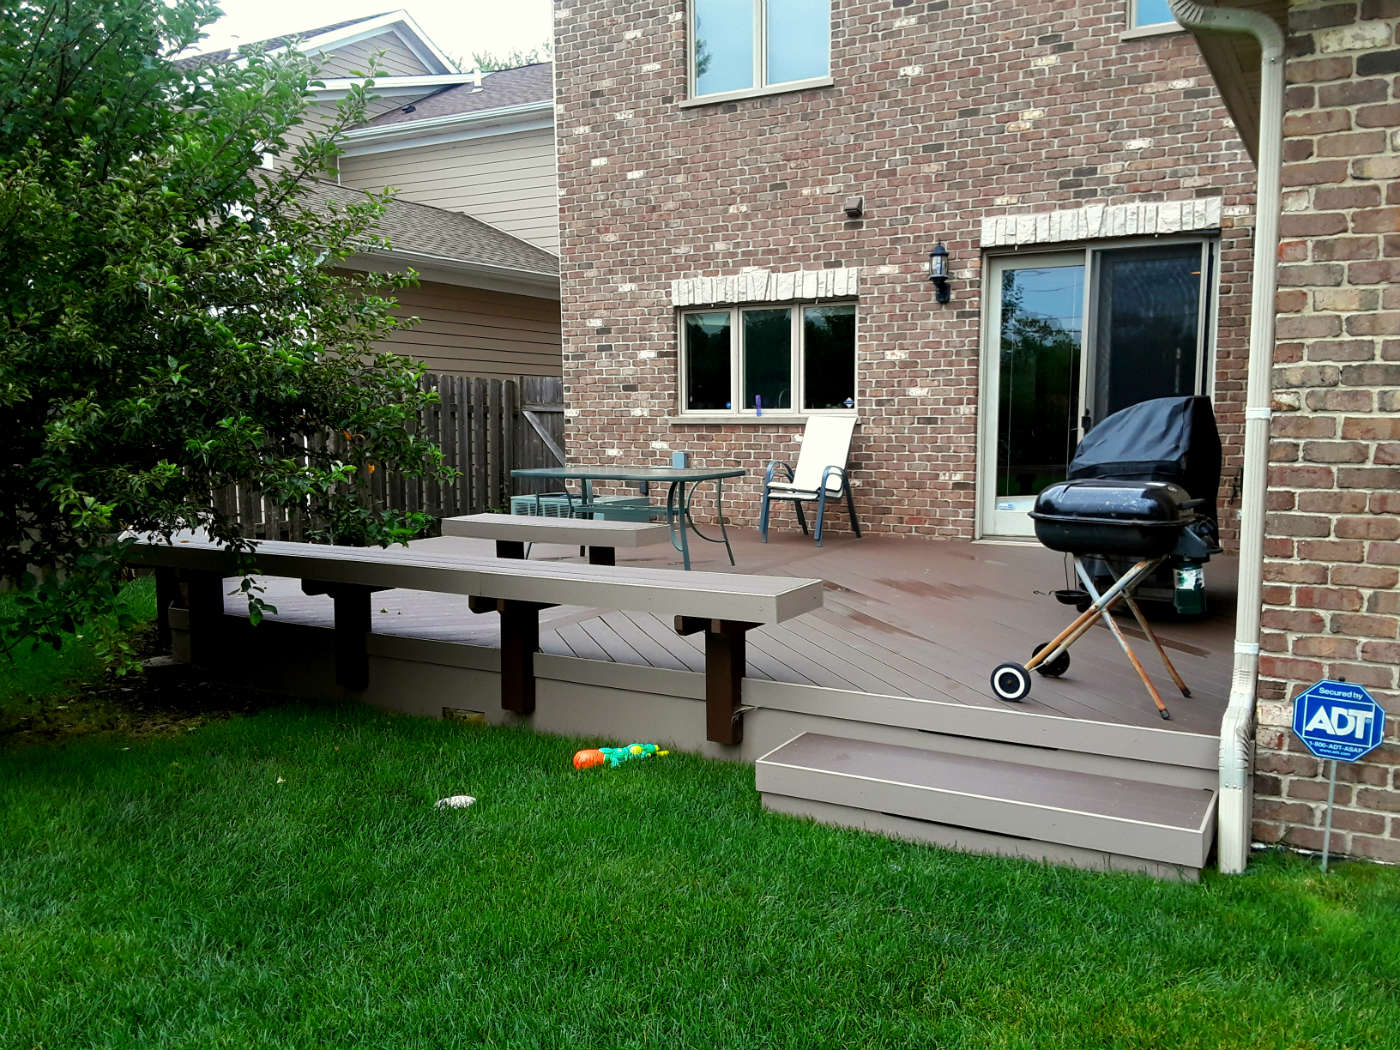 Timber Tech Low Maintenance Deck by Morton Grove, IL deck designer Thumbnail